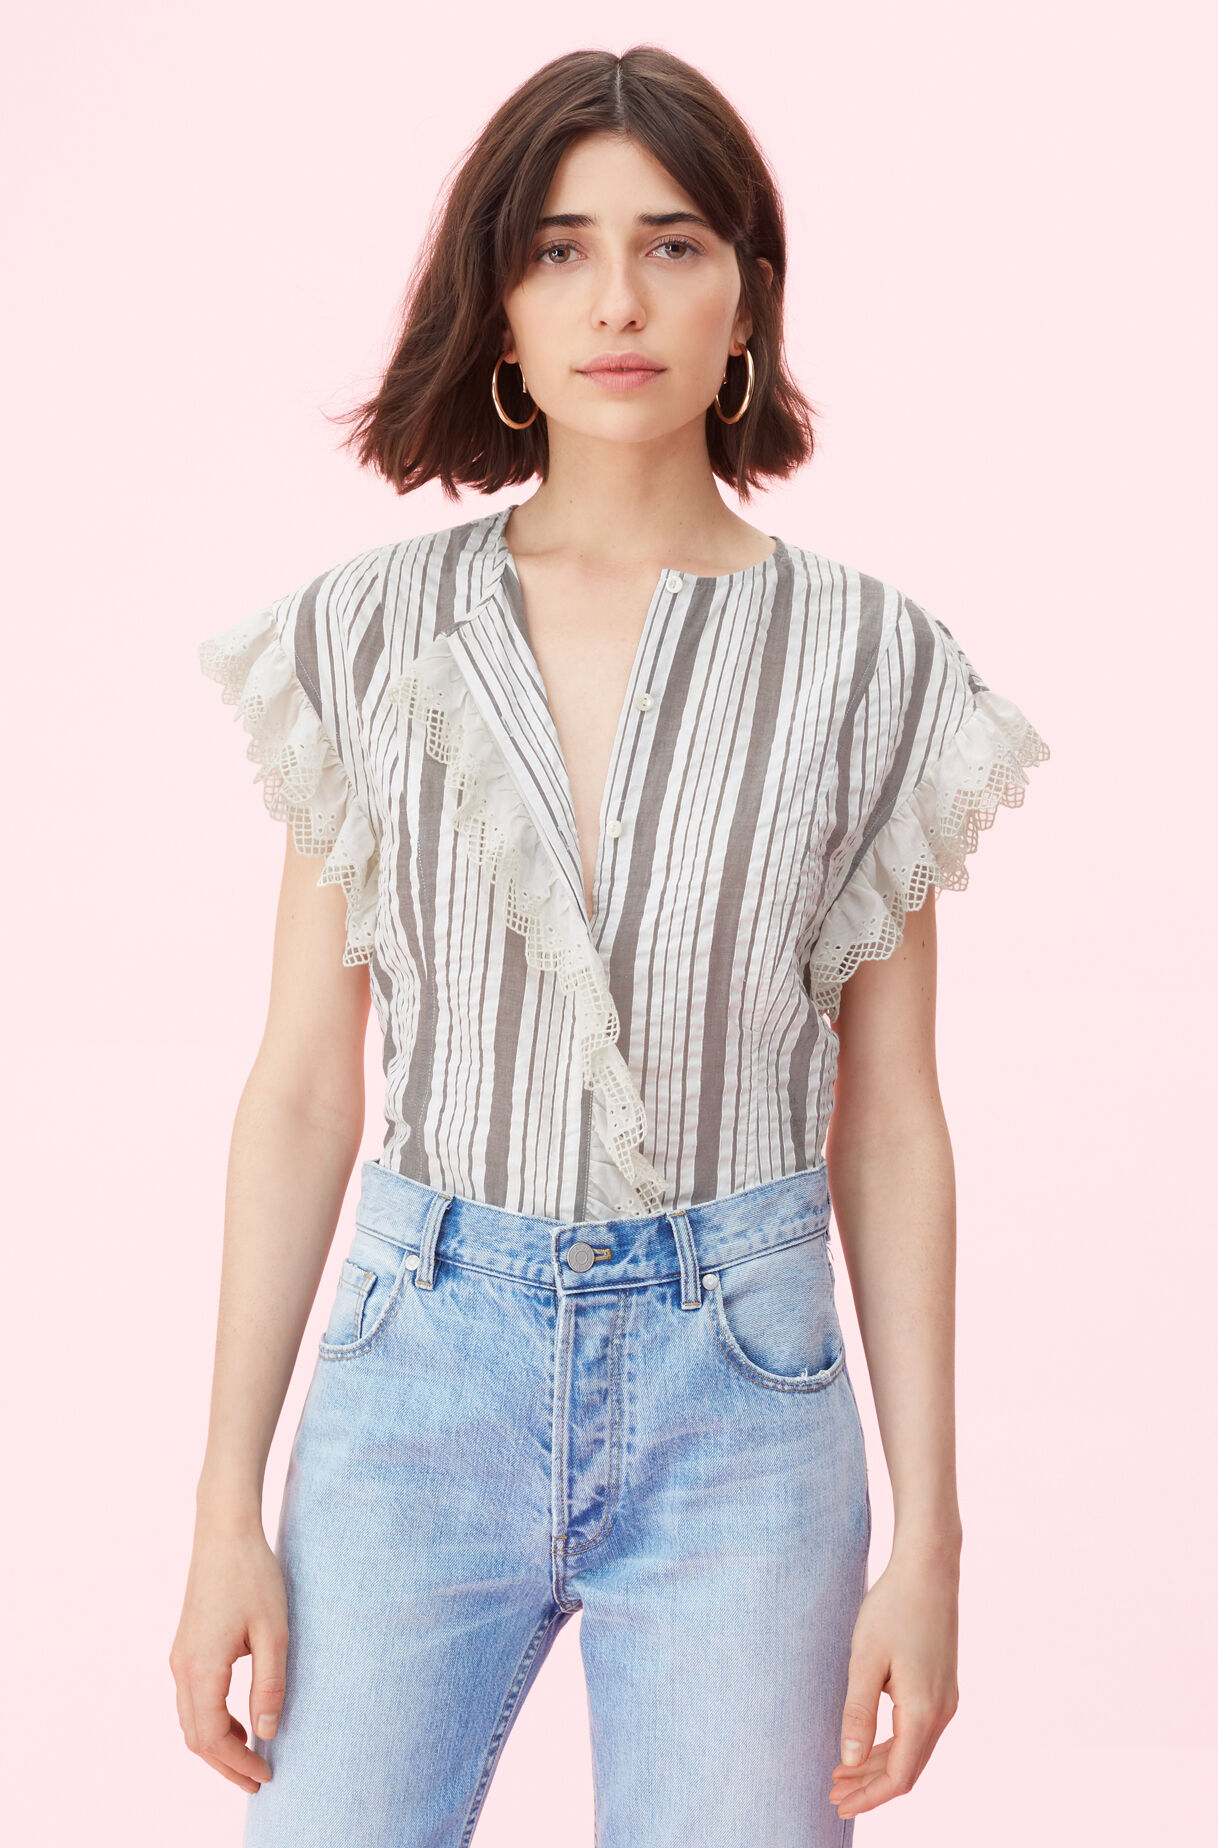 La Vie Corded Stripe Top With Eyelet, , large